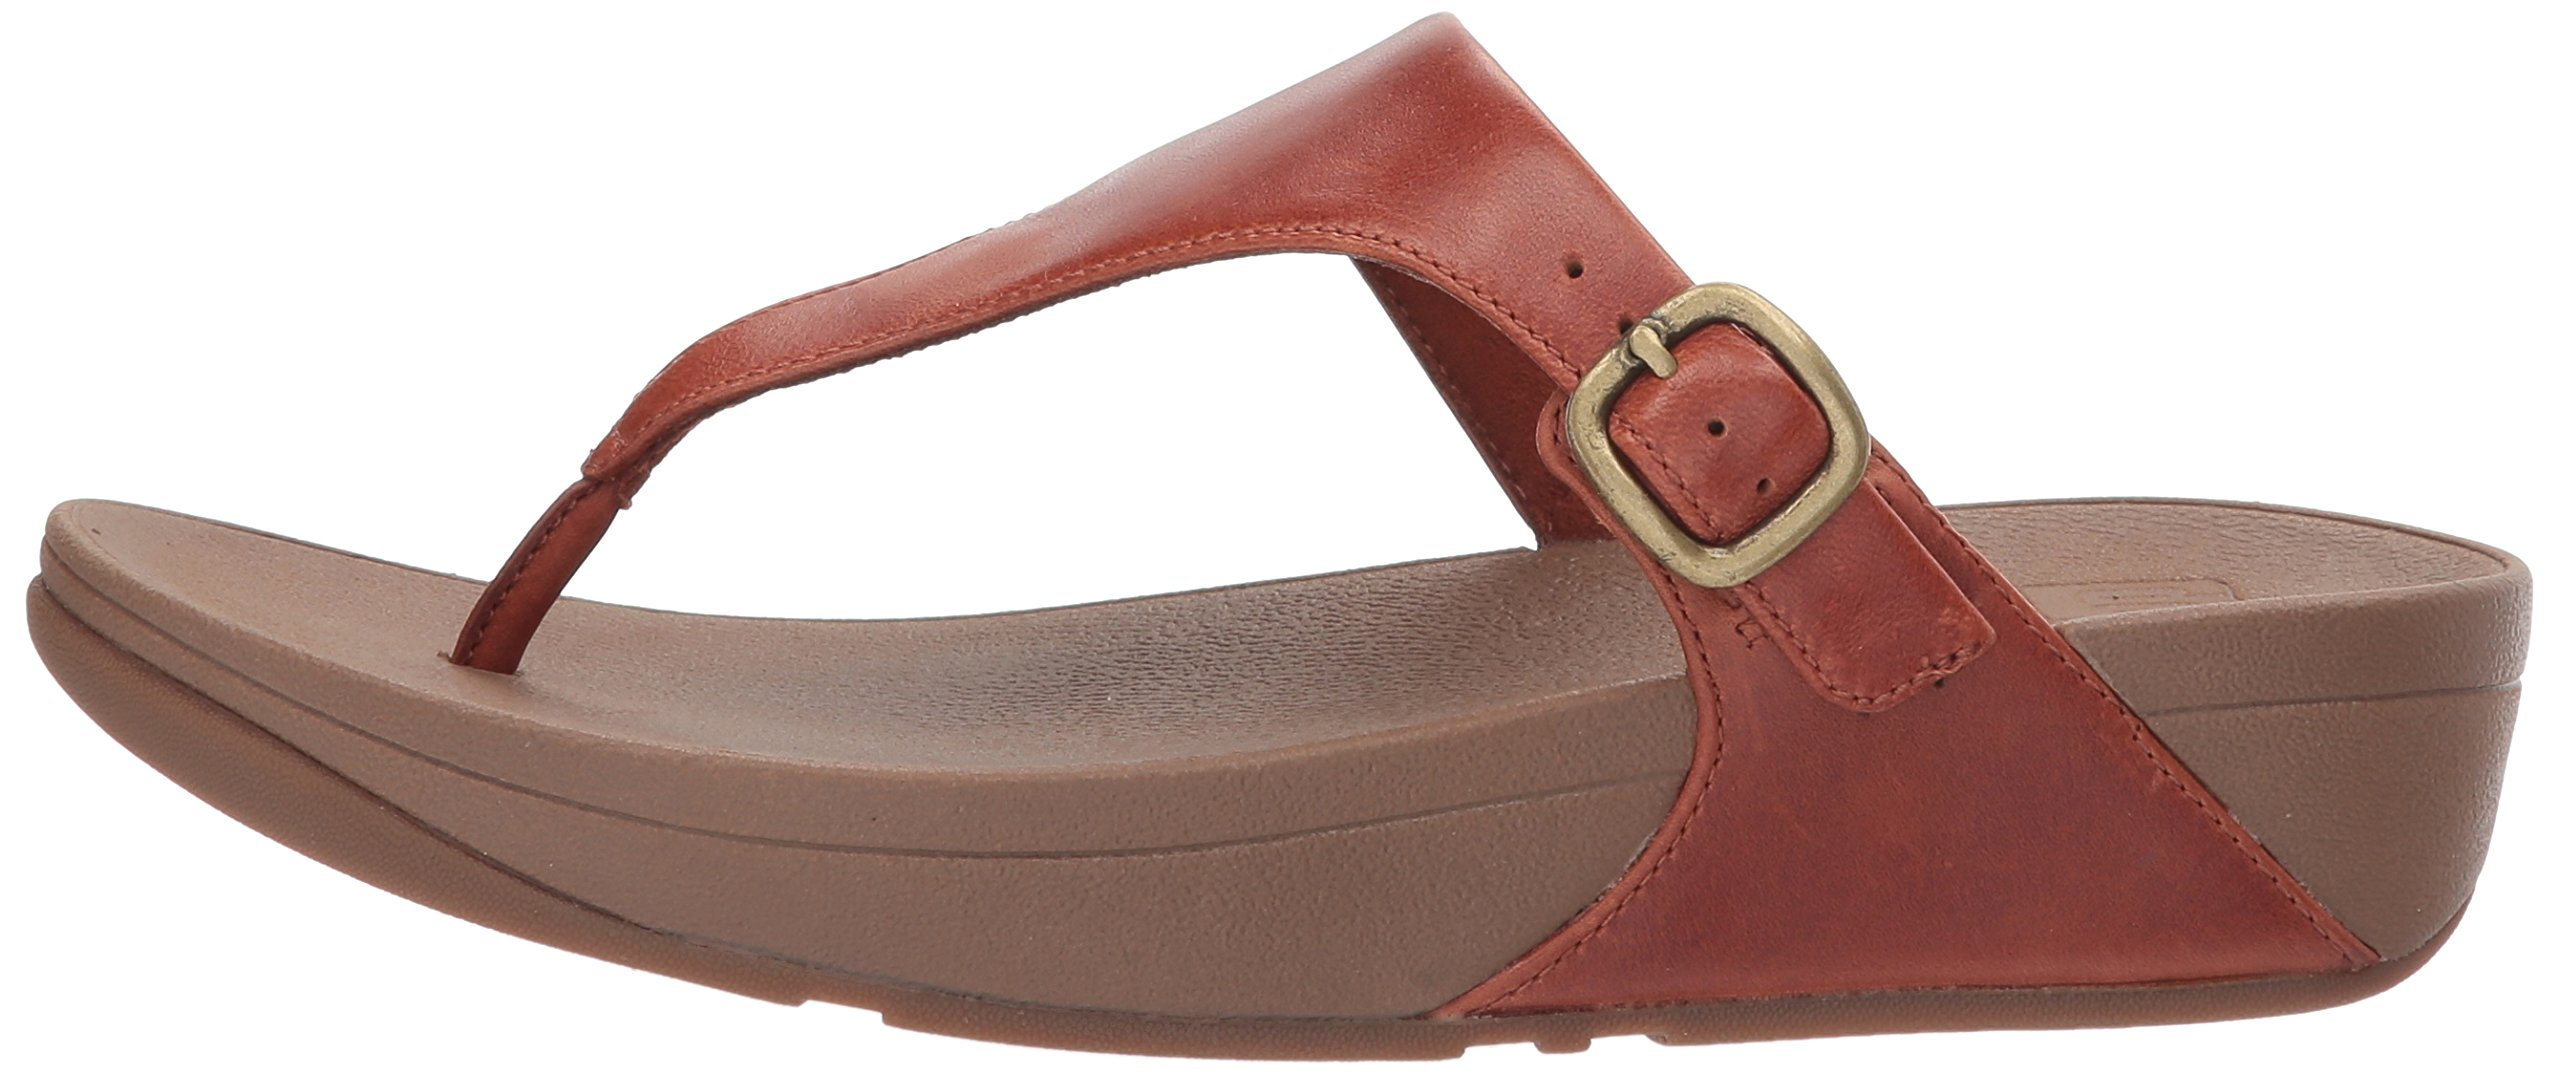 FitFlop Women's The Skinny Leather Toe-Thong Sandal, Dark Tan, 10 M US by FitFlop (Image #5)